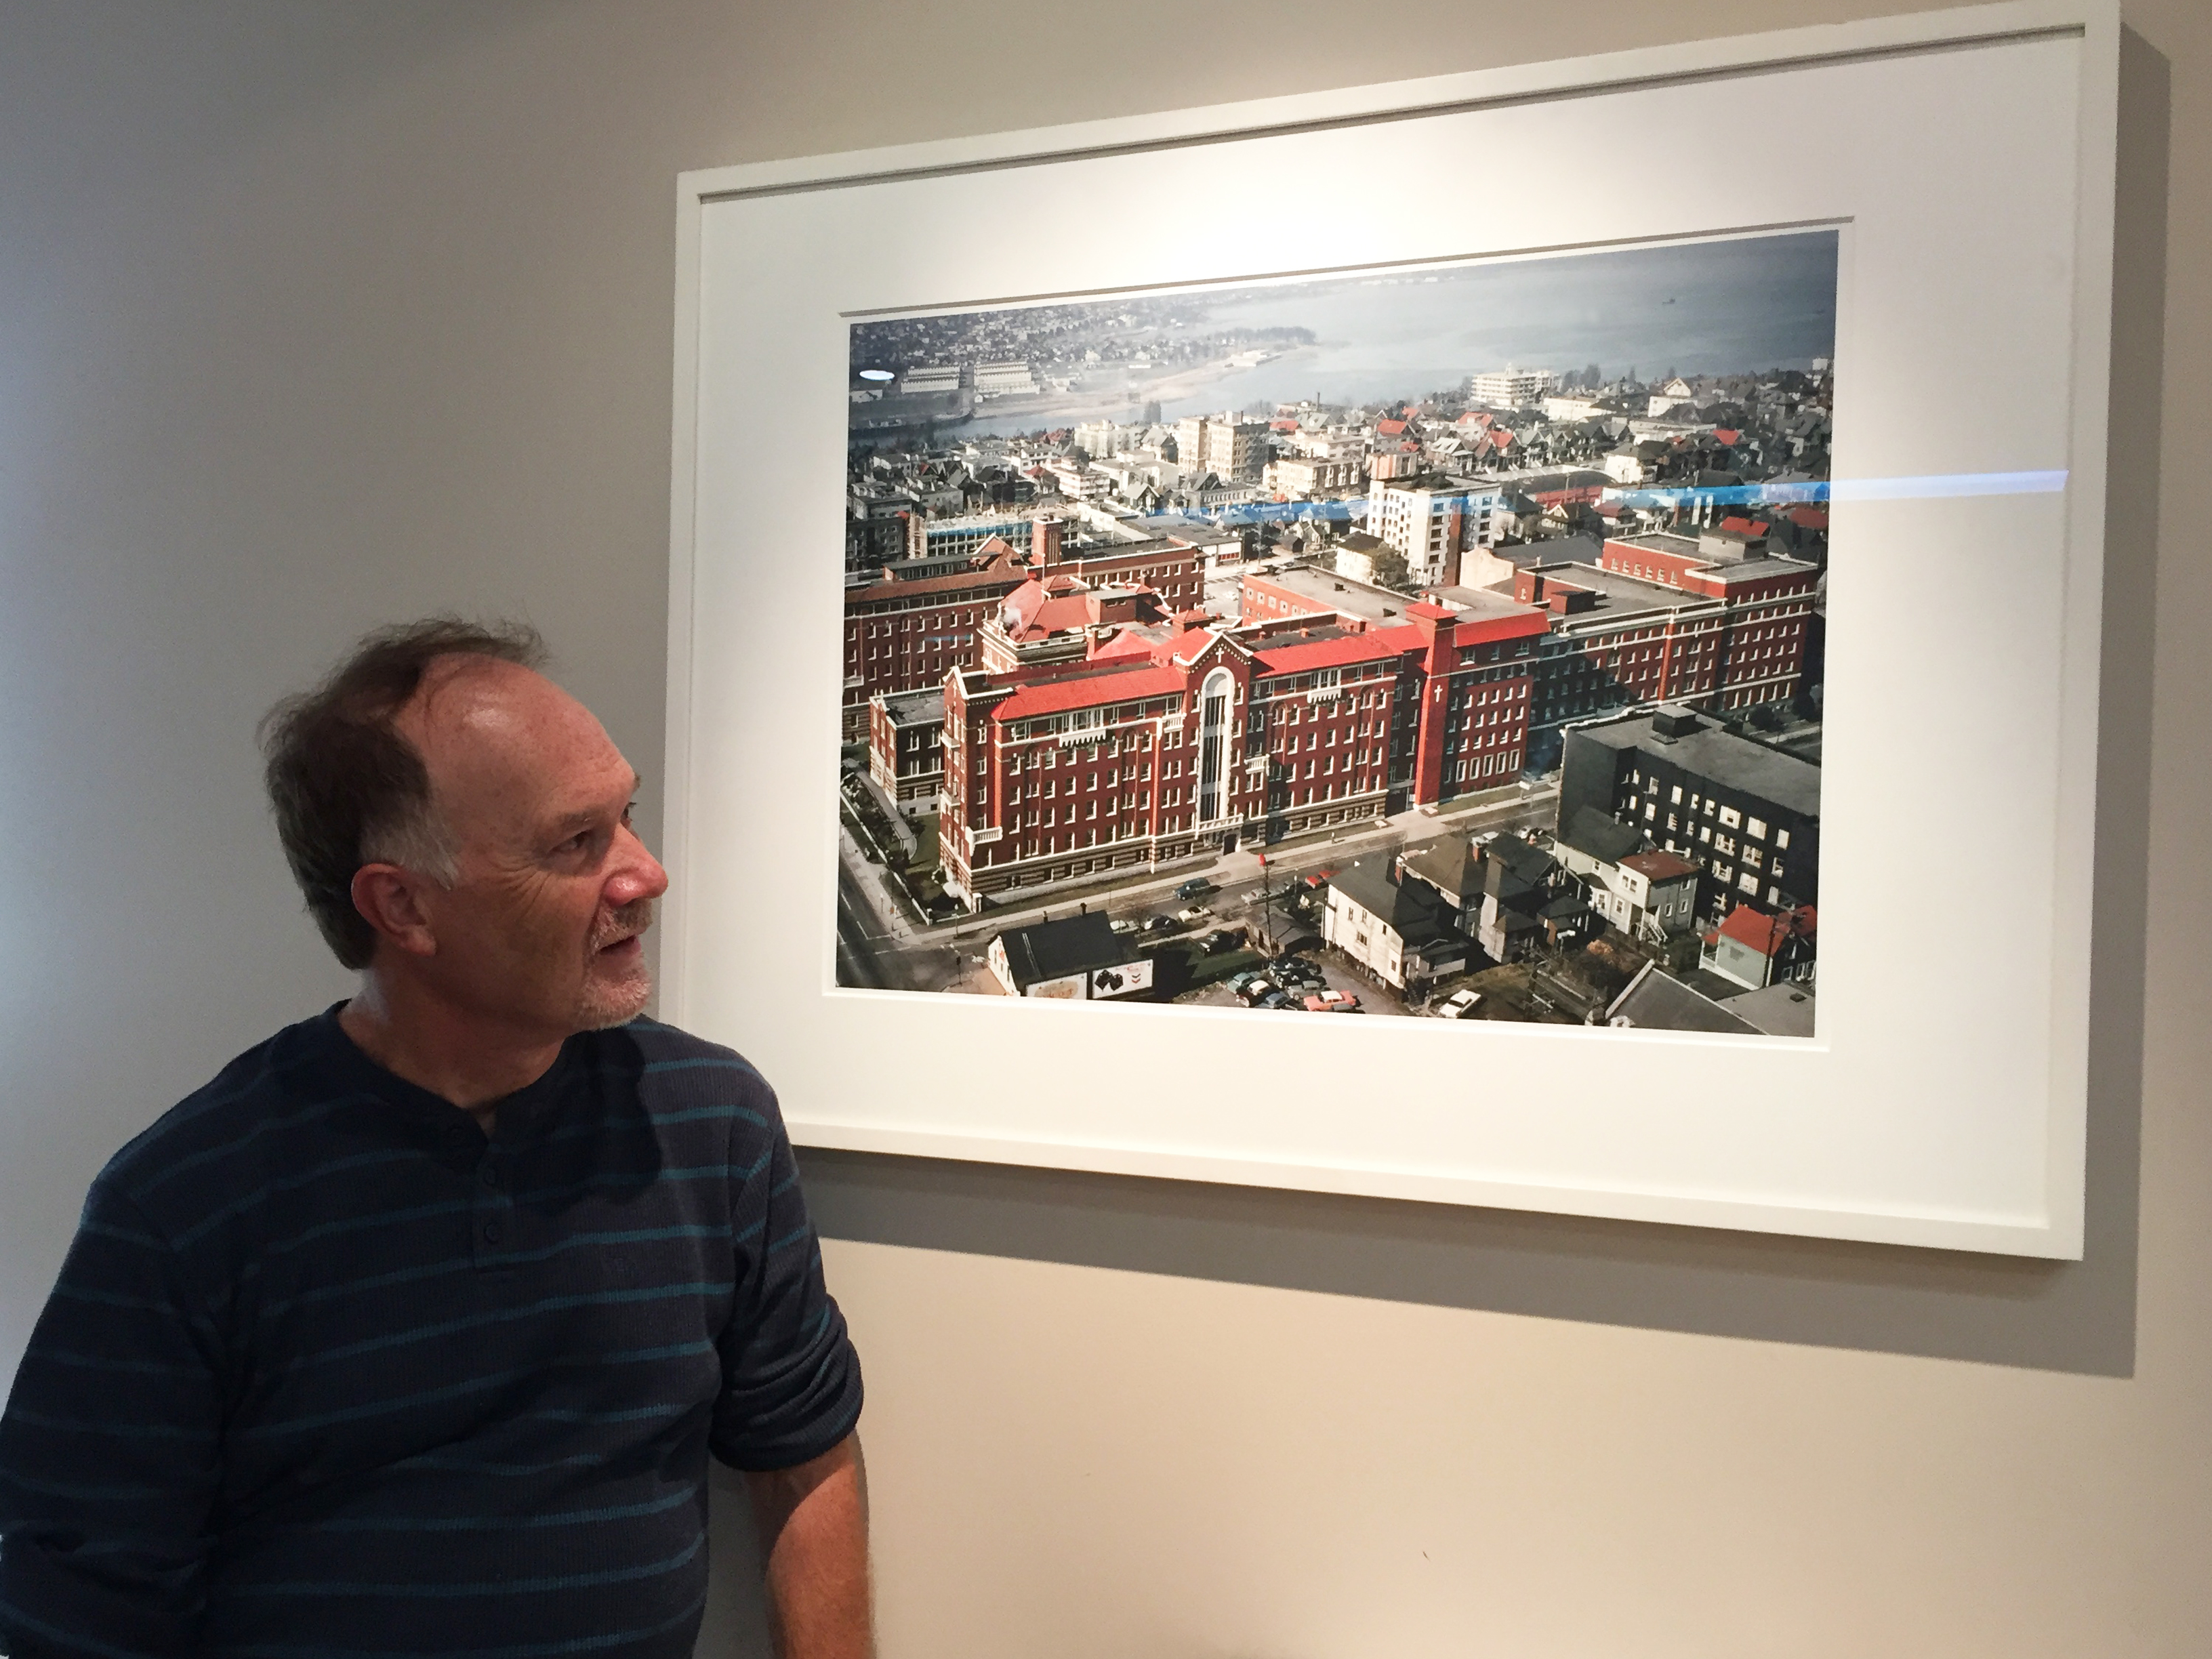 Smith admires the photograph Herzog donated to St. Paul's Hospital.